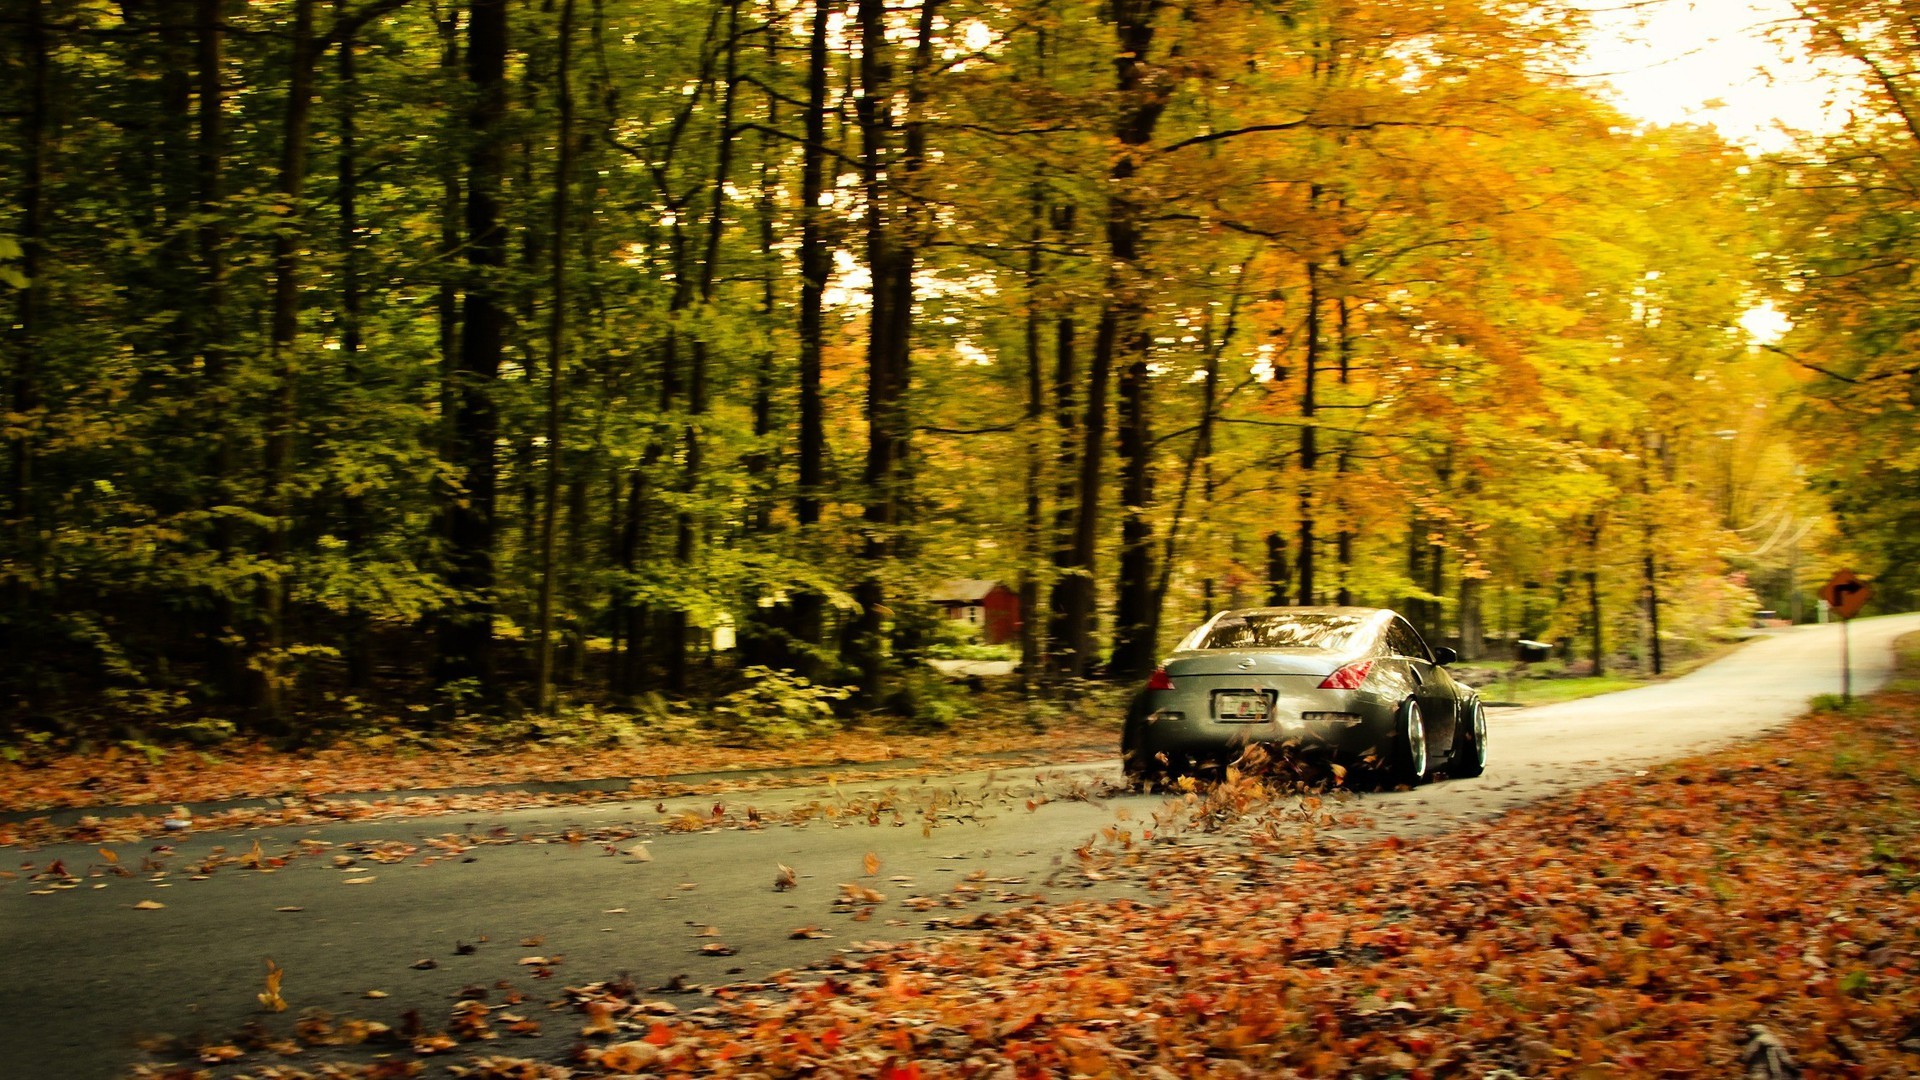 Fall Desktop Wallpaper 1920x1080 Nissan 350z Fallen Leaves Wallpaper Allwallpaper In